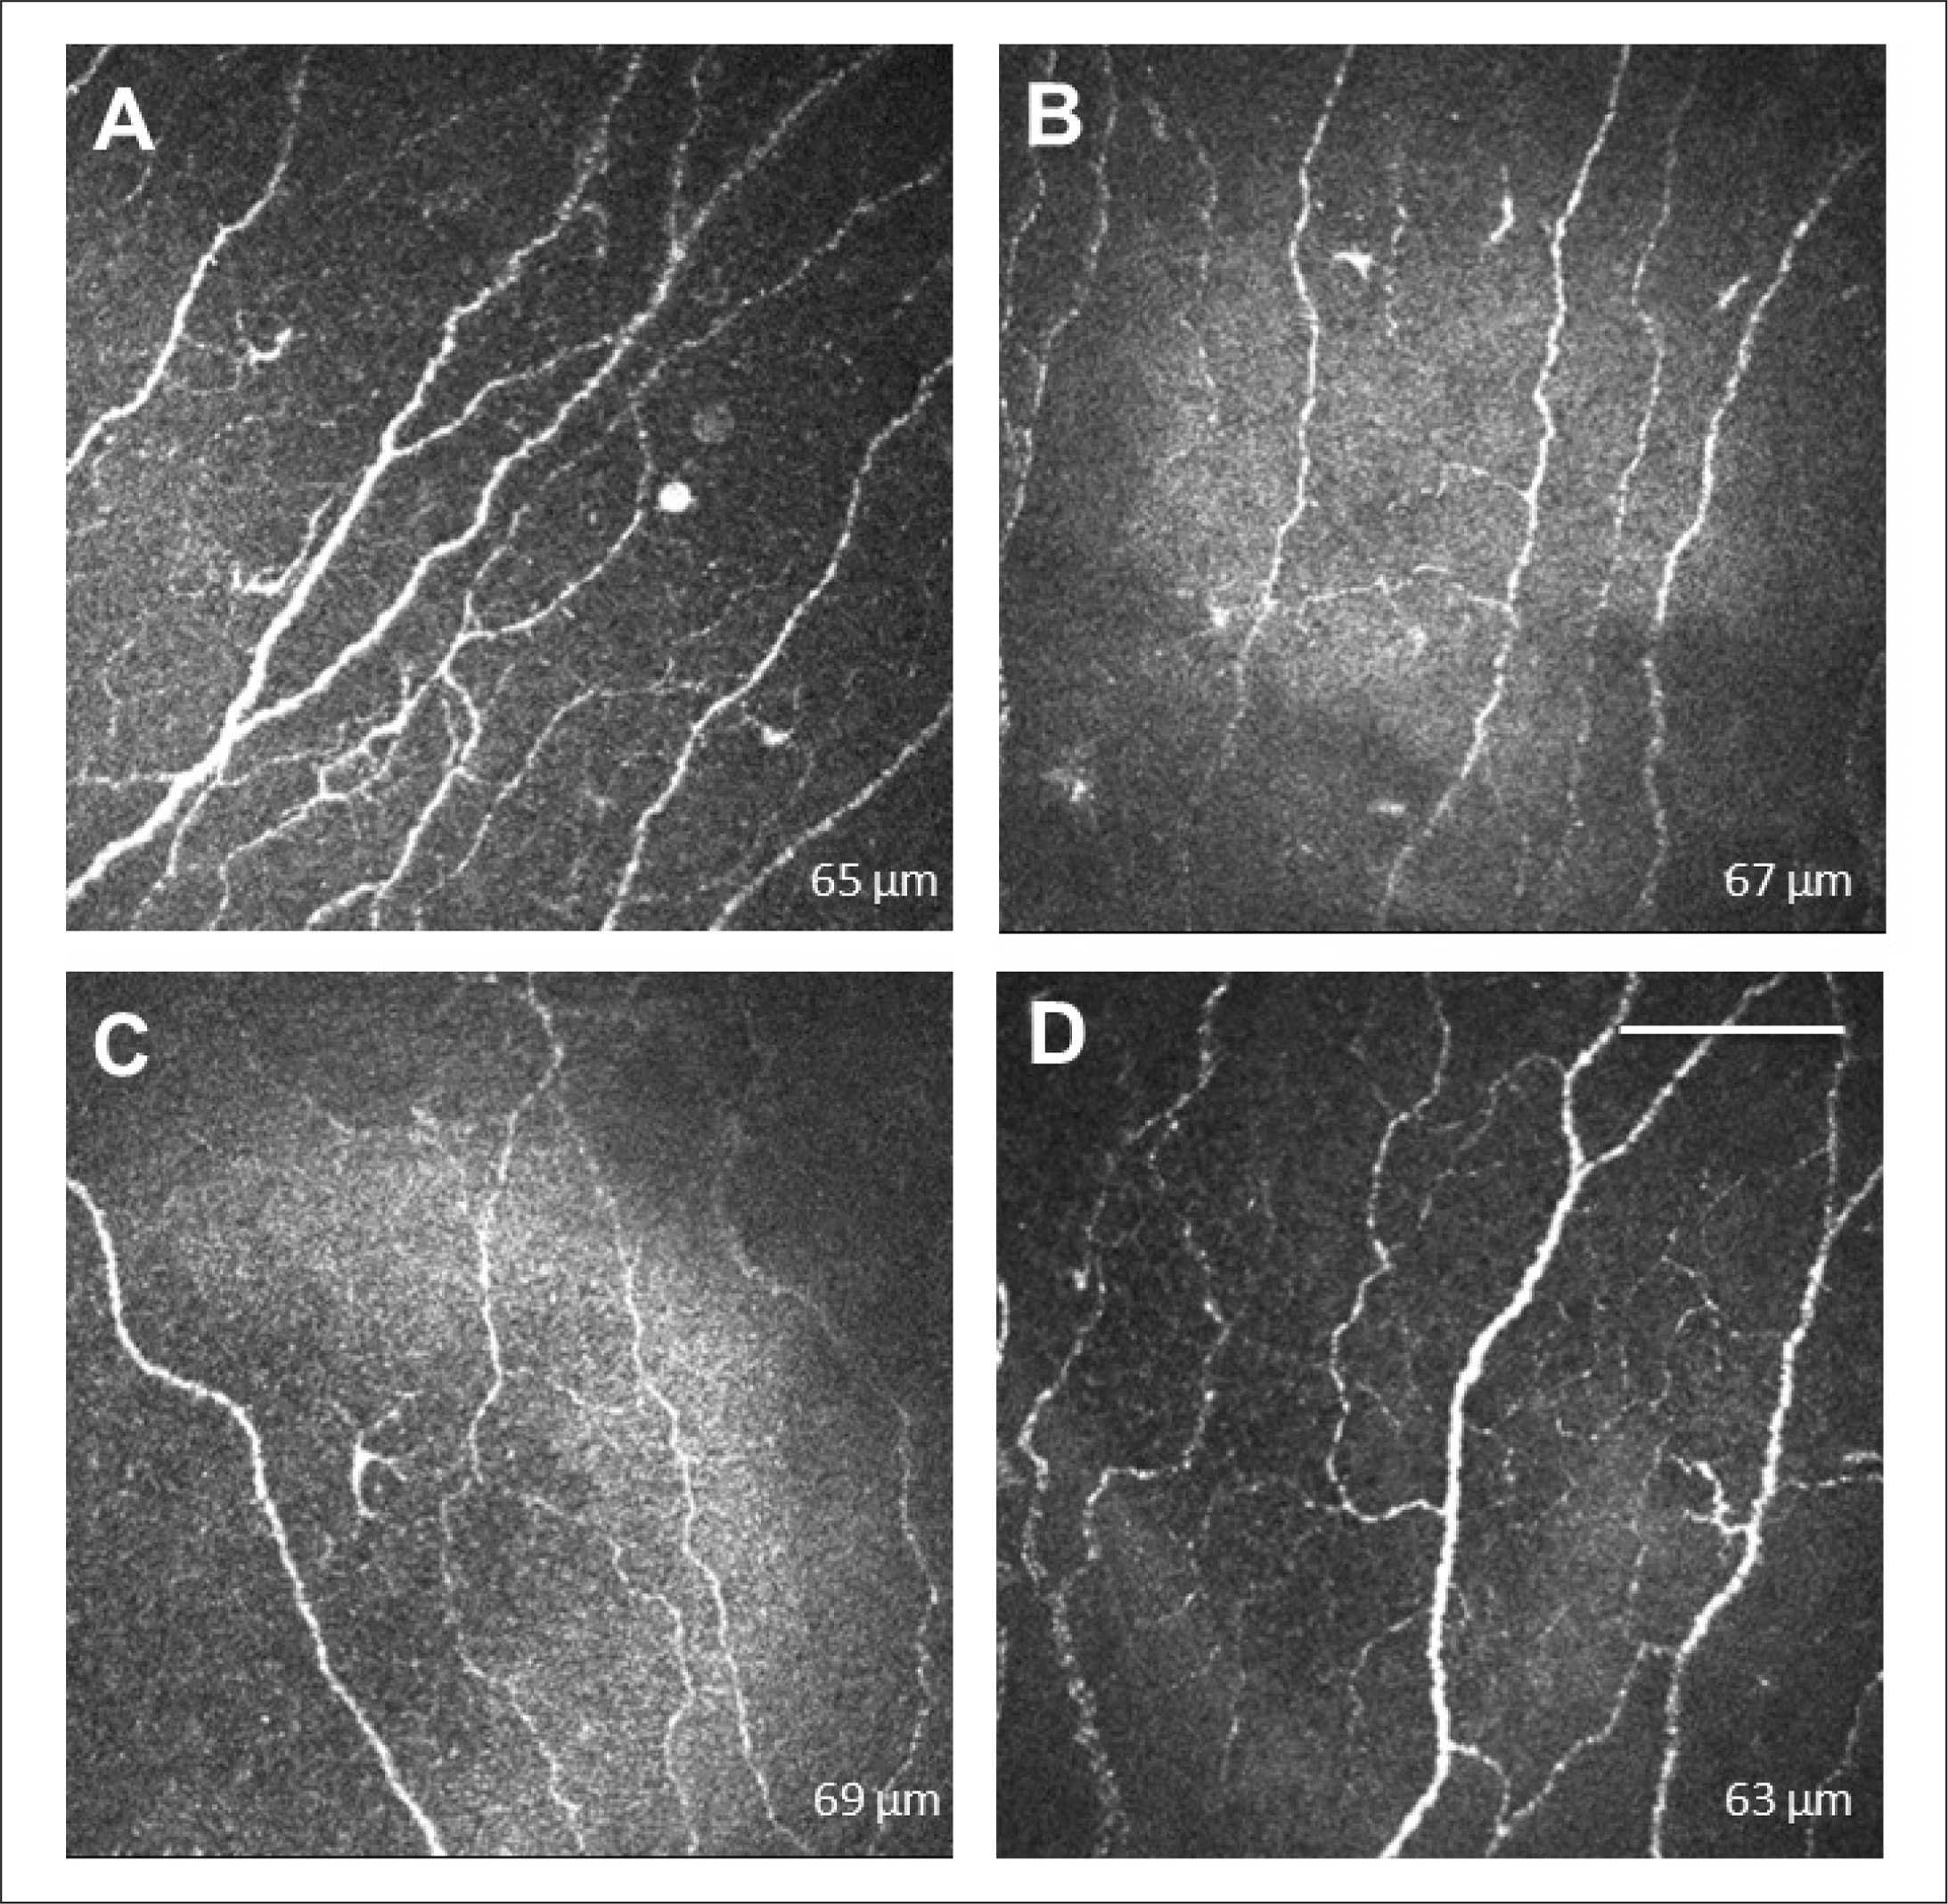 Corneal confocal microscopy images of the subbasal nerve plexus in one patient (A) before surgery and (B) 1, (C) 3, and (D) 6 months after small incision lenticule extraction (SMILE). Subbasal nerve density was low at all visits, and regeneration was incomplete at 6 months. The white bar represents 100 µm. The Heidelberg retina tomography images correspond to an area of 400 × 400 µm.